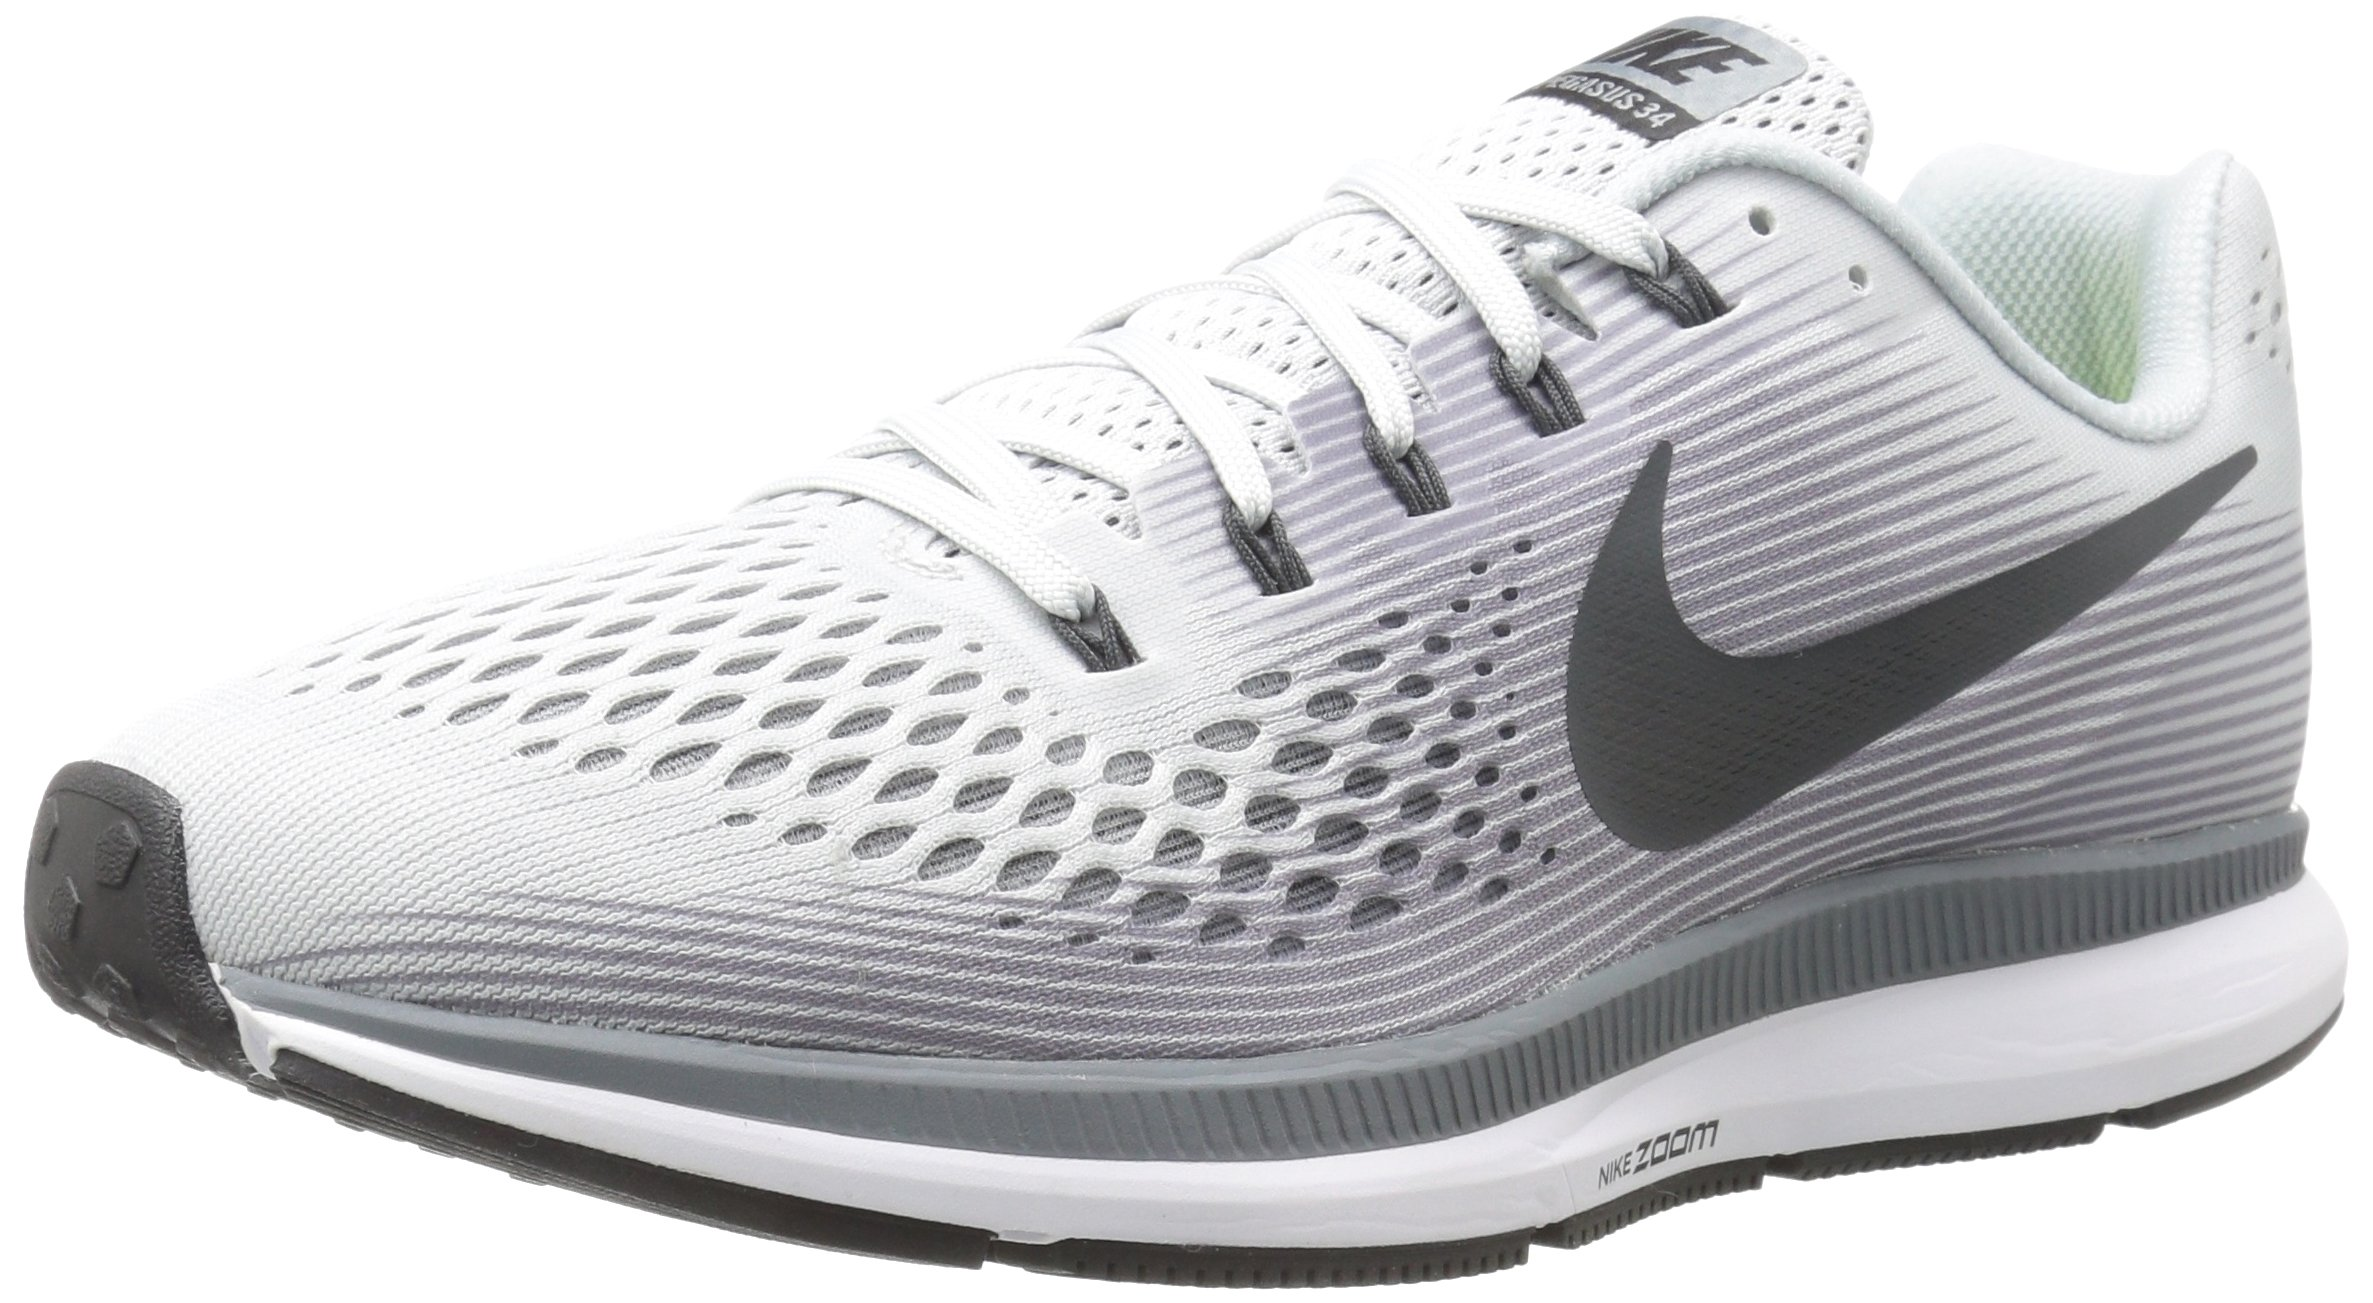 32d7f2363998b Nike Men's Air Zoom Pegasus 34 Running Shoes-Pure Platinum/Anthracite-10